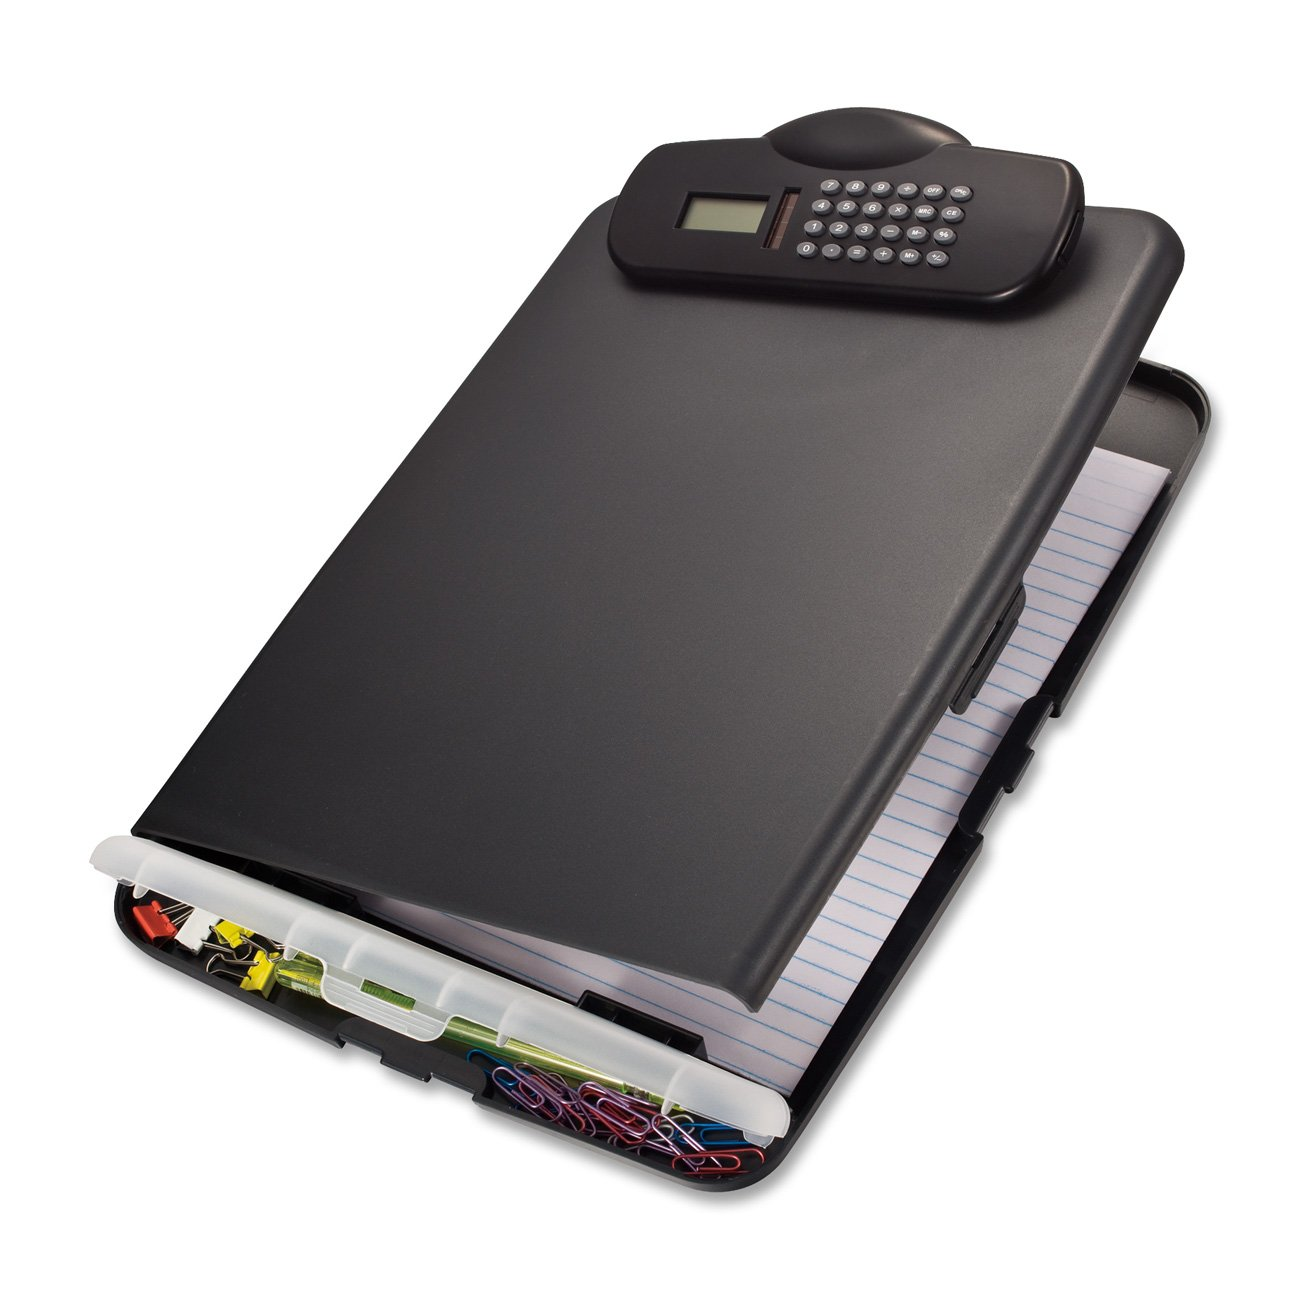 Officemate Slim Clipboard Box with Calculator, Charcoal (83306)